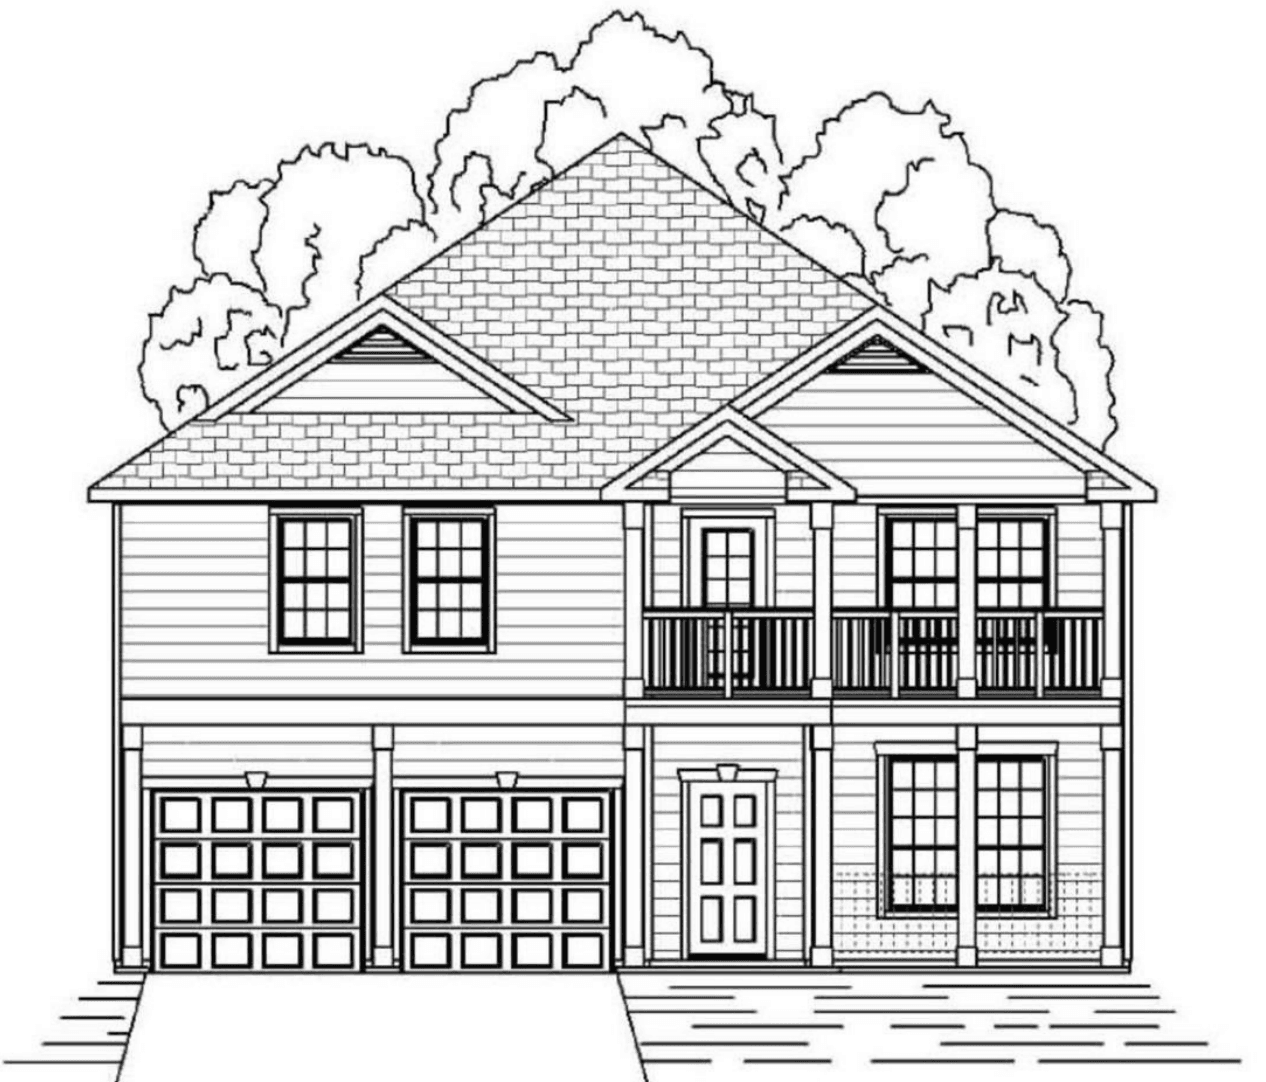 http://partners-dynamic.bdxcdn.com/Images/Homes/HistoryMakerHomes/max1500_33769986-190417.png